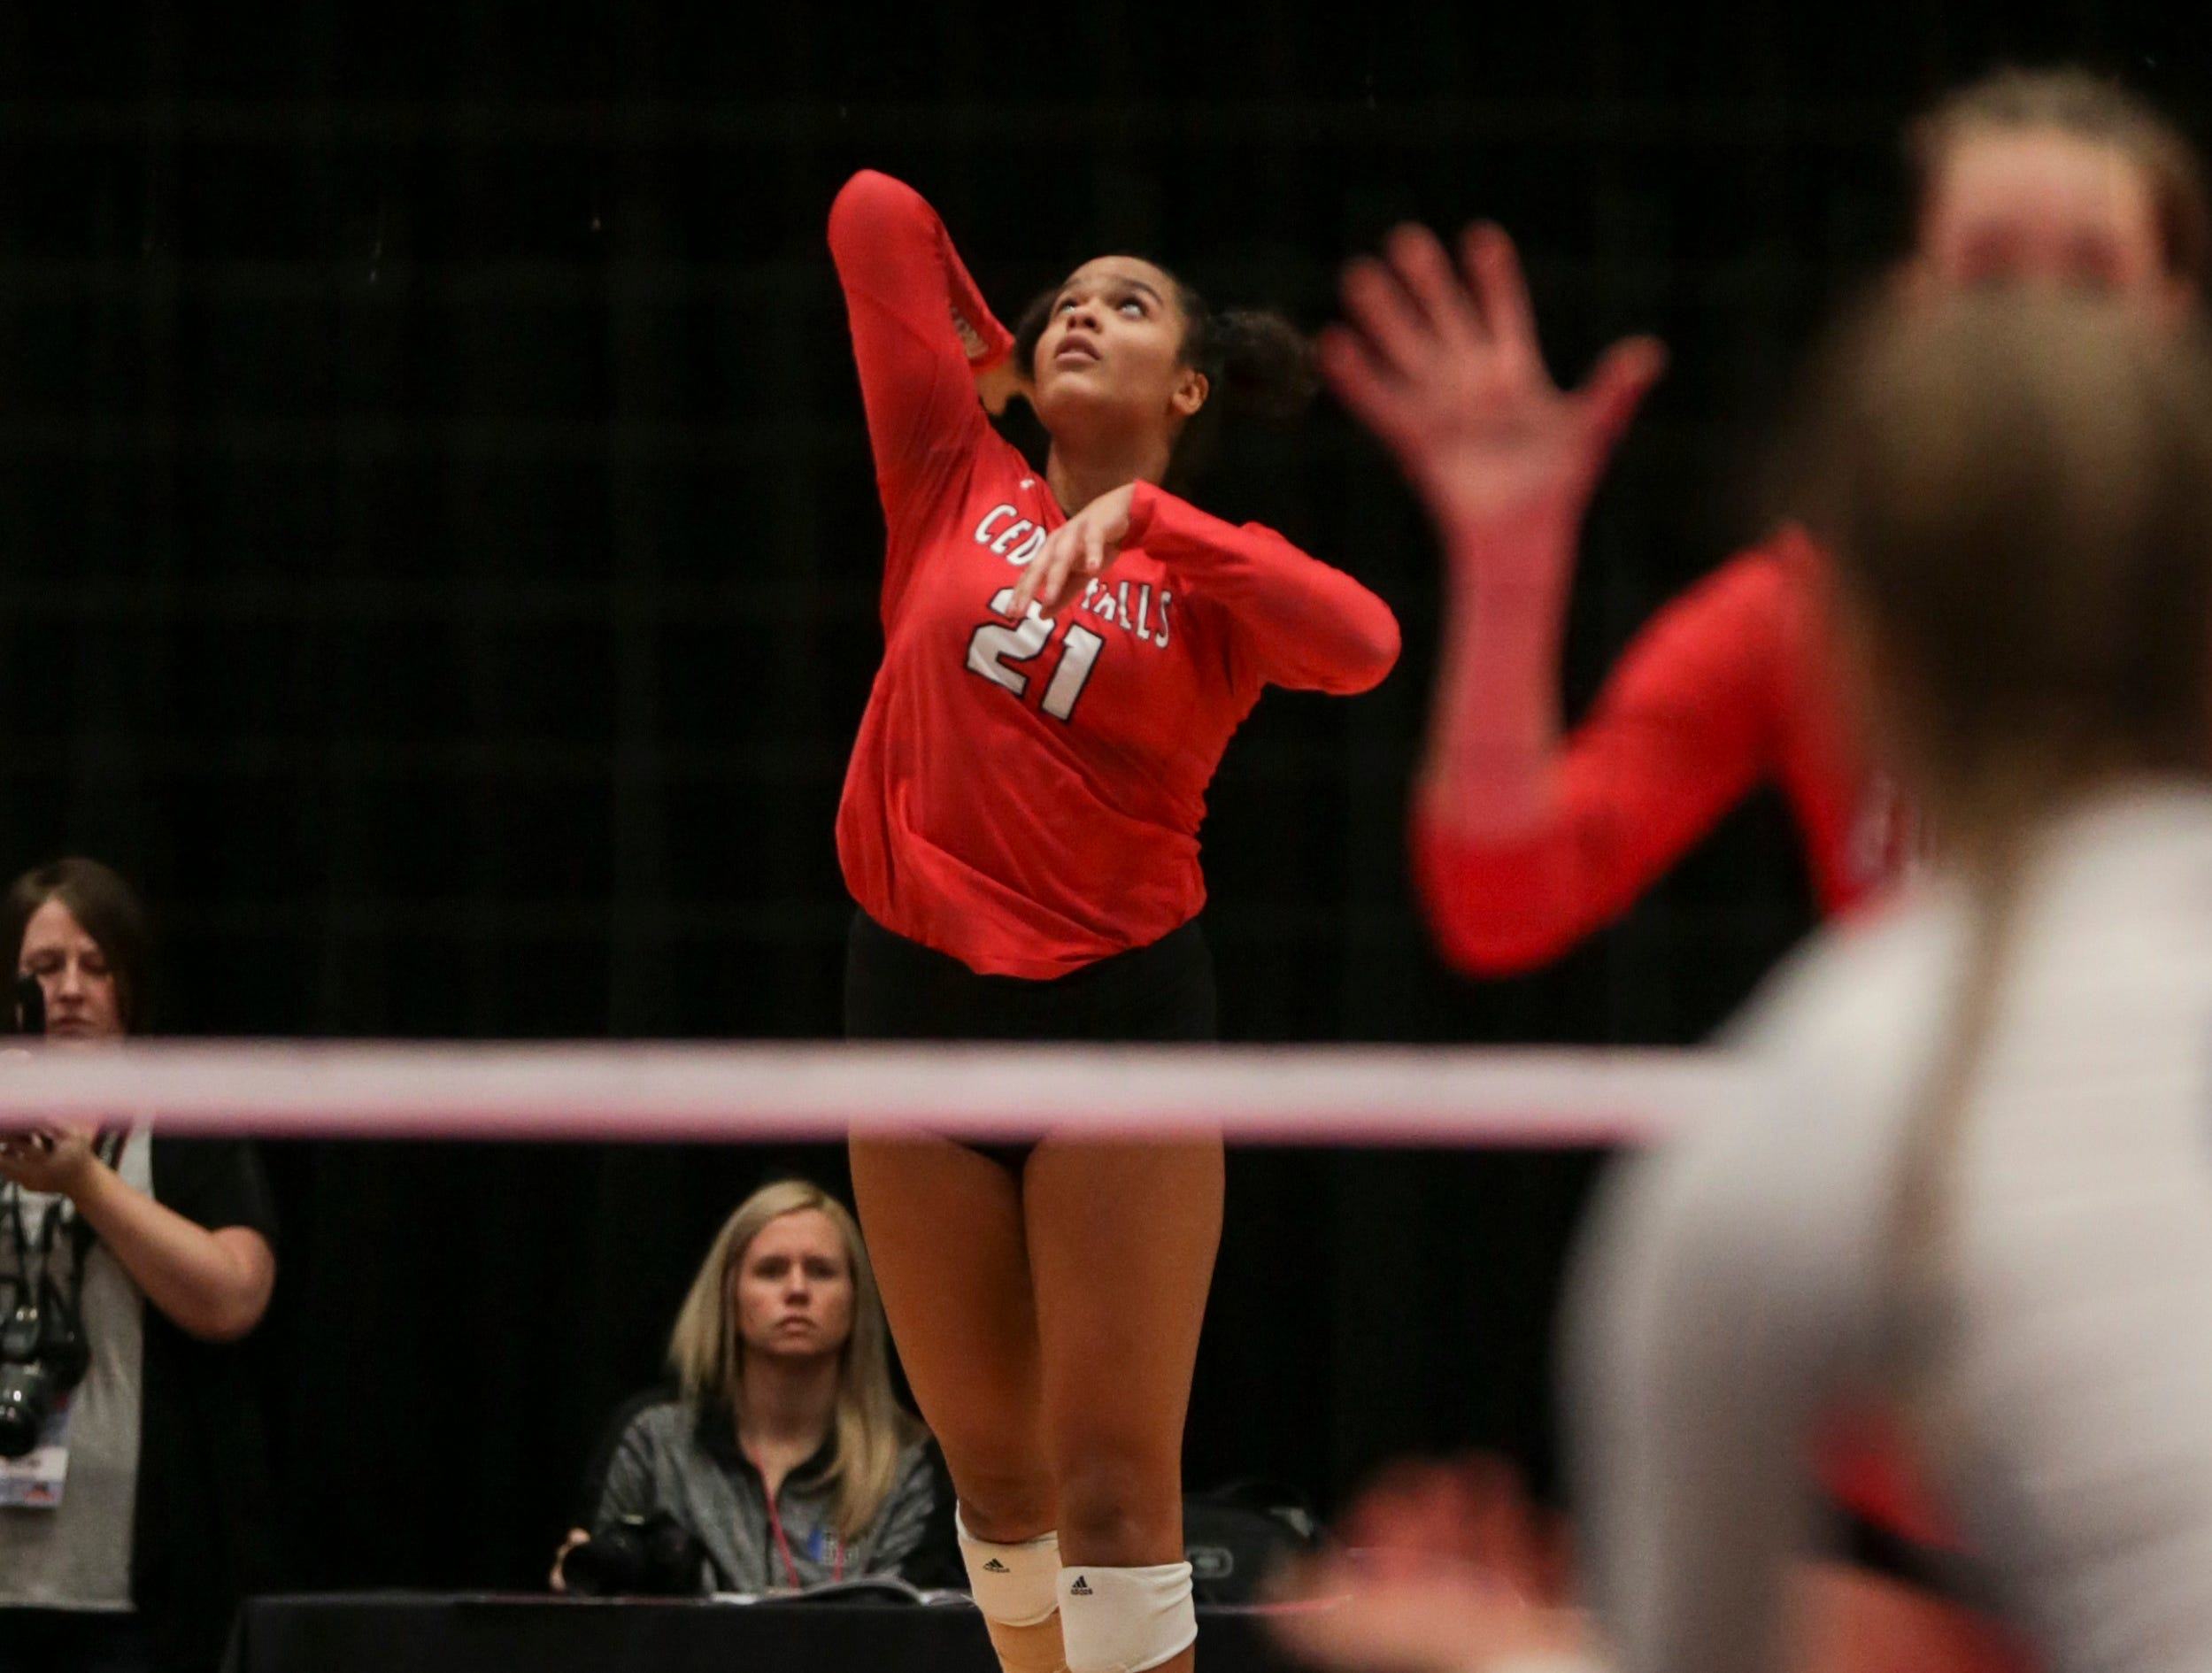 Akacia Brown of Cedar Falls skies for a serve during a state volleyball tournament match.